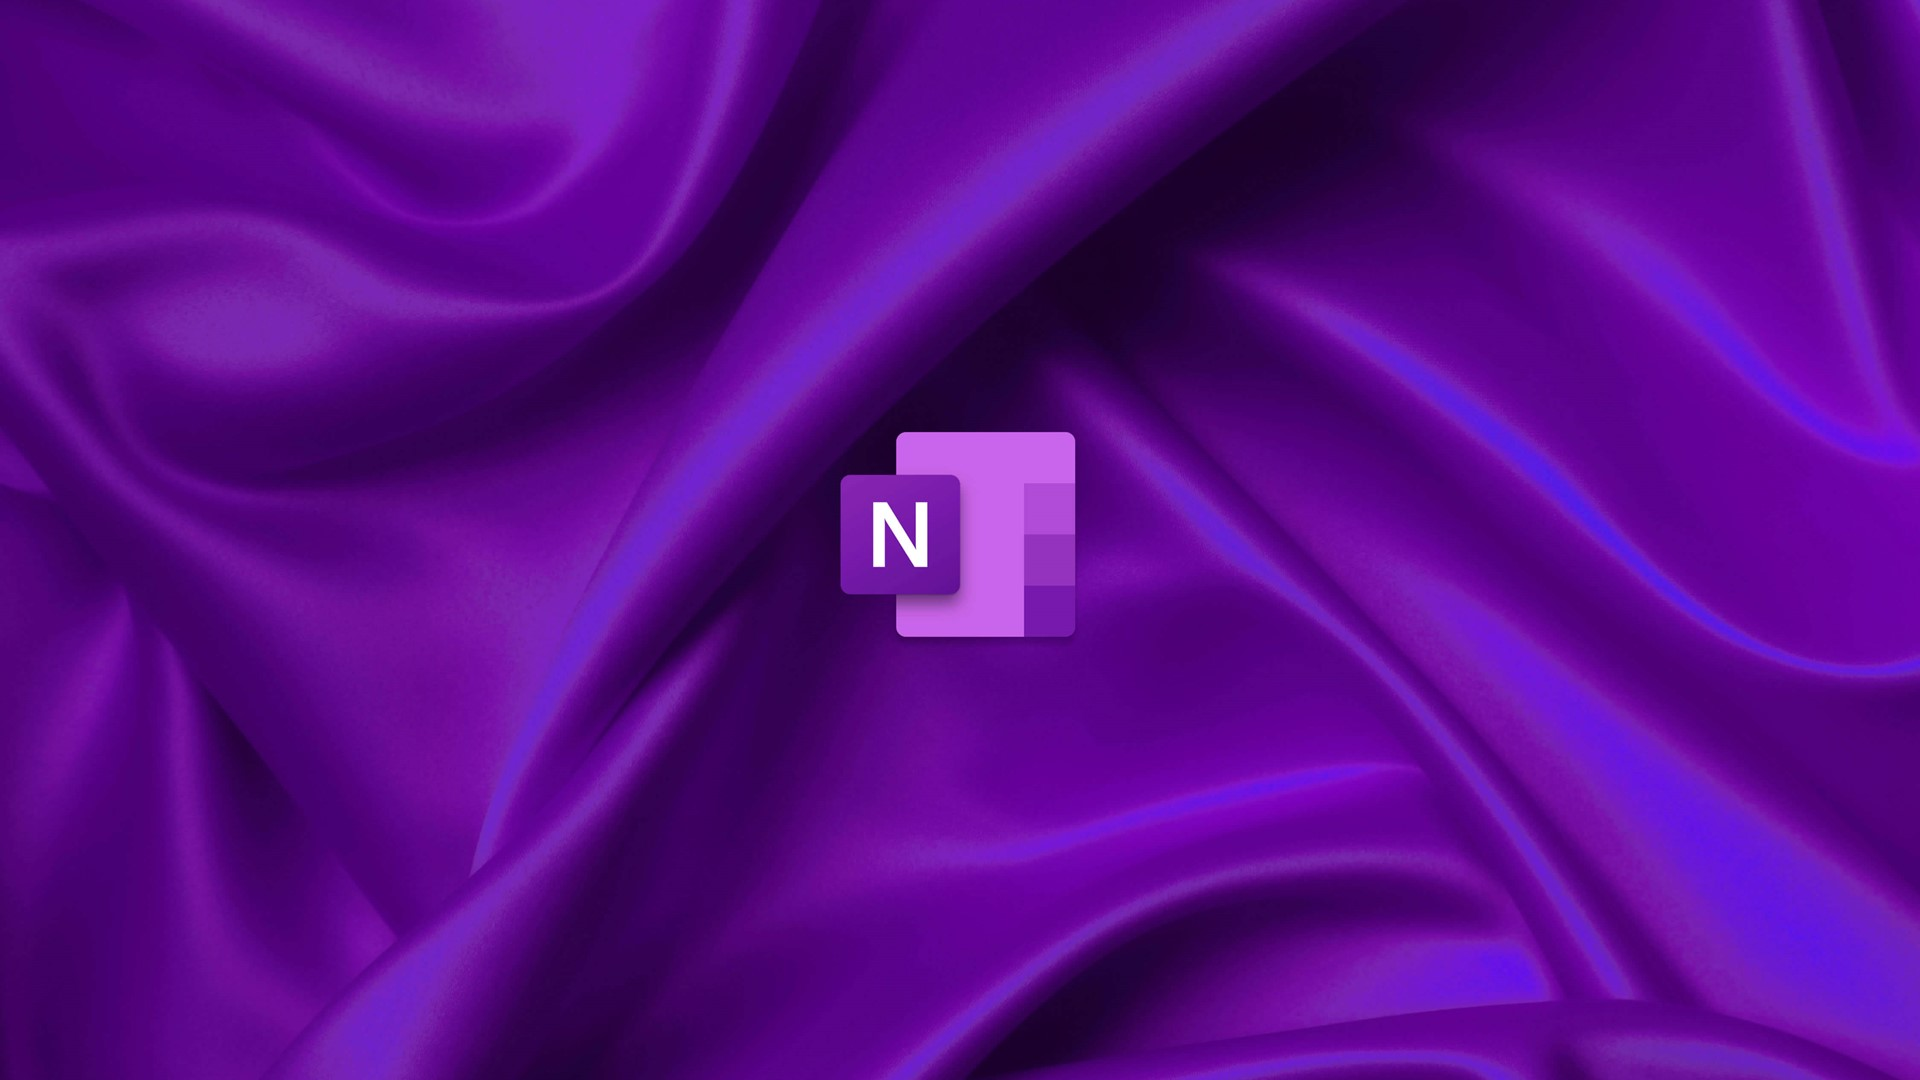 OneNote wallpaper